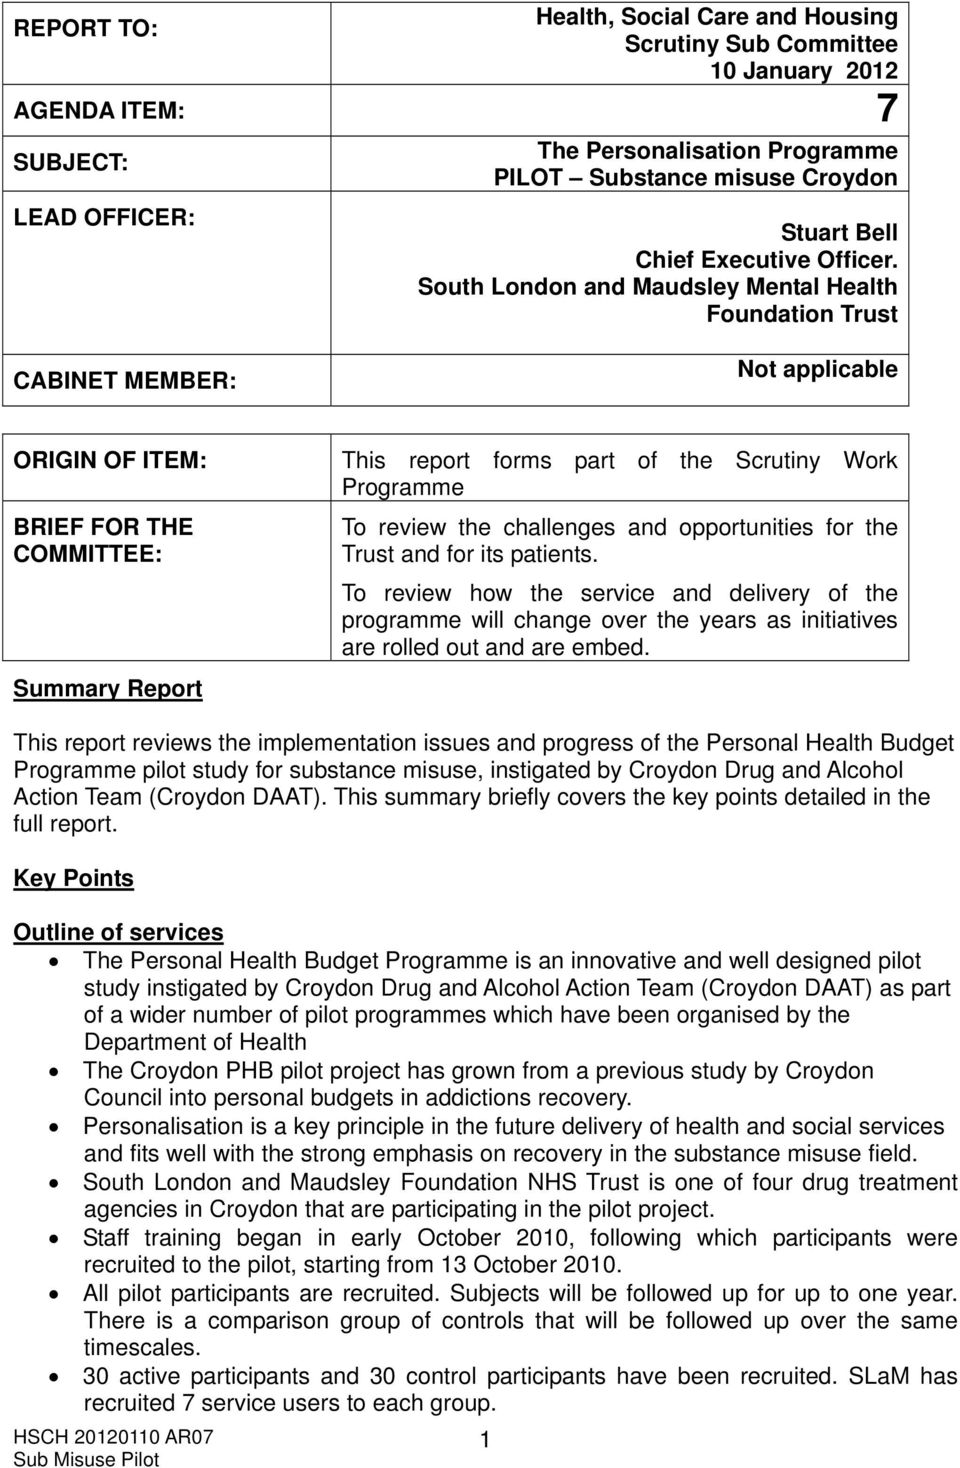 South London and Maudsley Mental Health Foundation Trust CABINET MEMBER: Not applicable ORIGIN OF ITEM: BRIEF FOR THE COMMITTEE: Summary Report This report forms part of the Scrutiny Work Programme